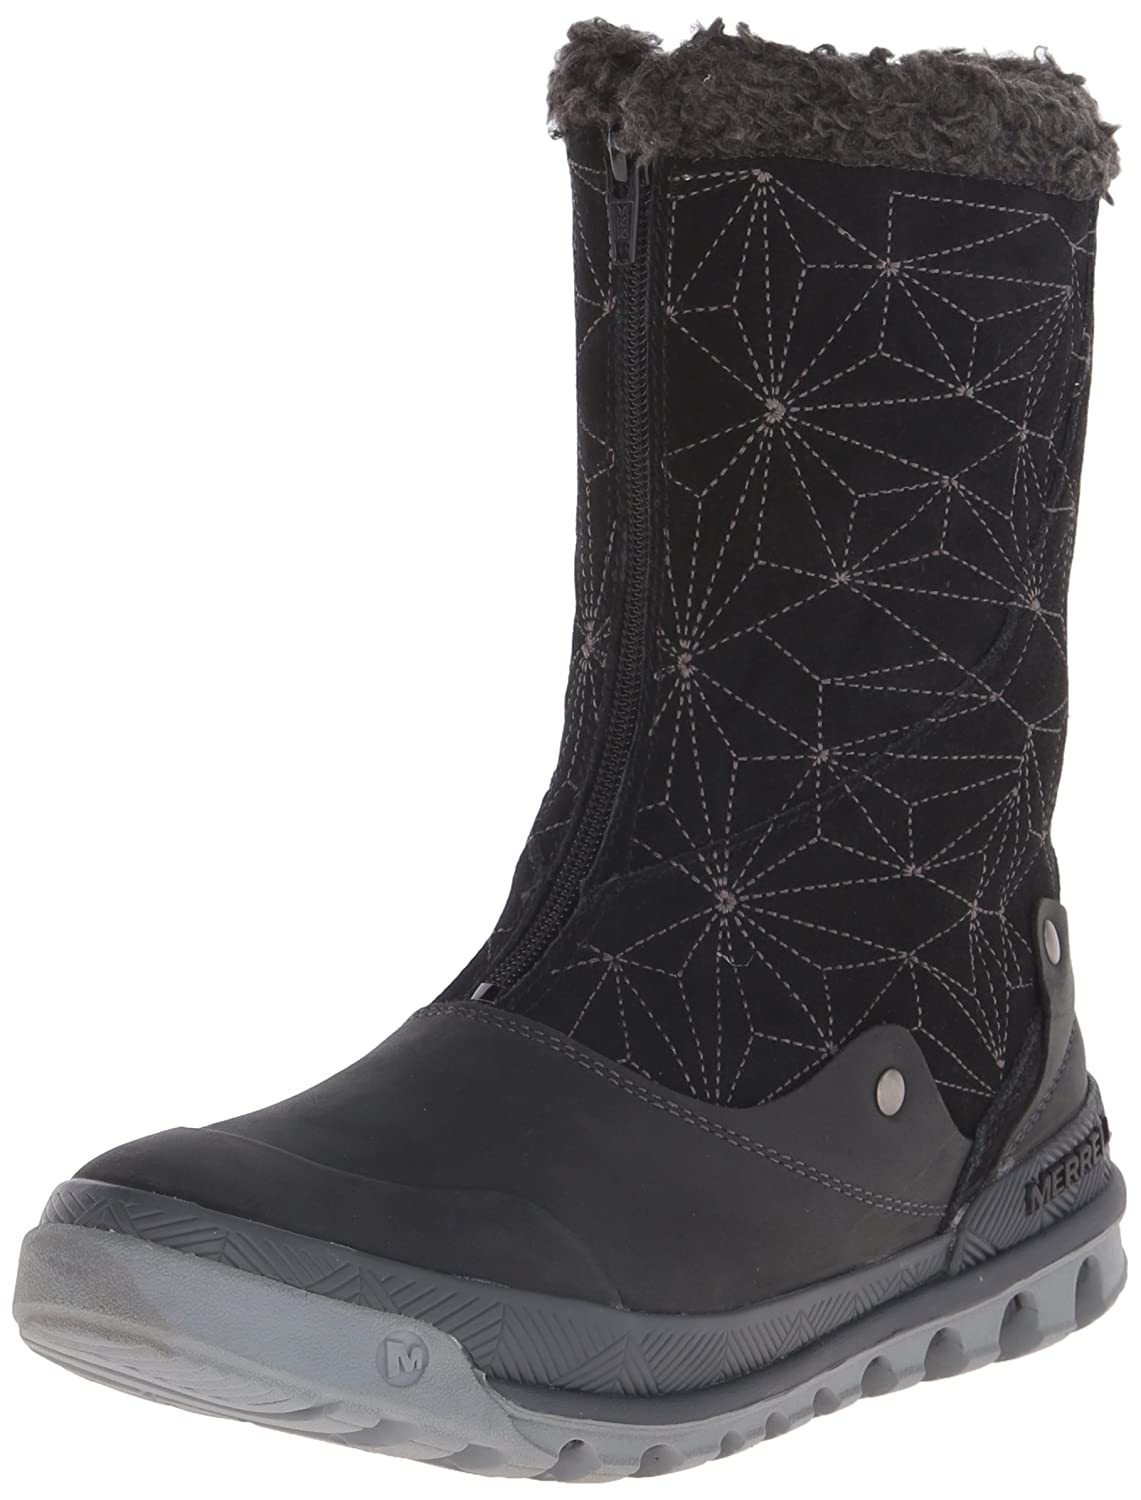 Merrell Women's Silversun Zip Waterproof Winter Boot B00R4L8GJK 9.5 B(M) US|Black